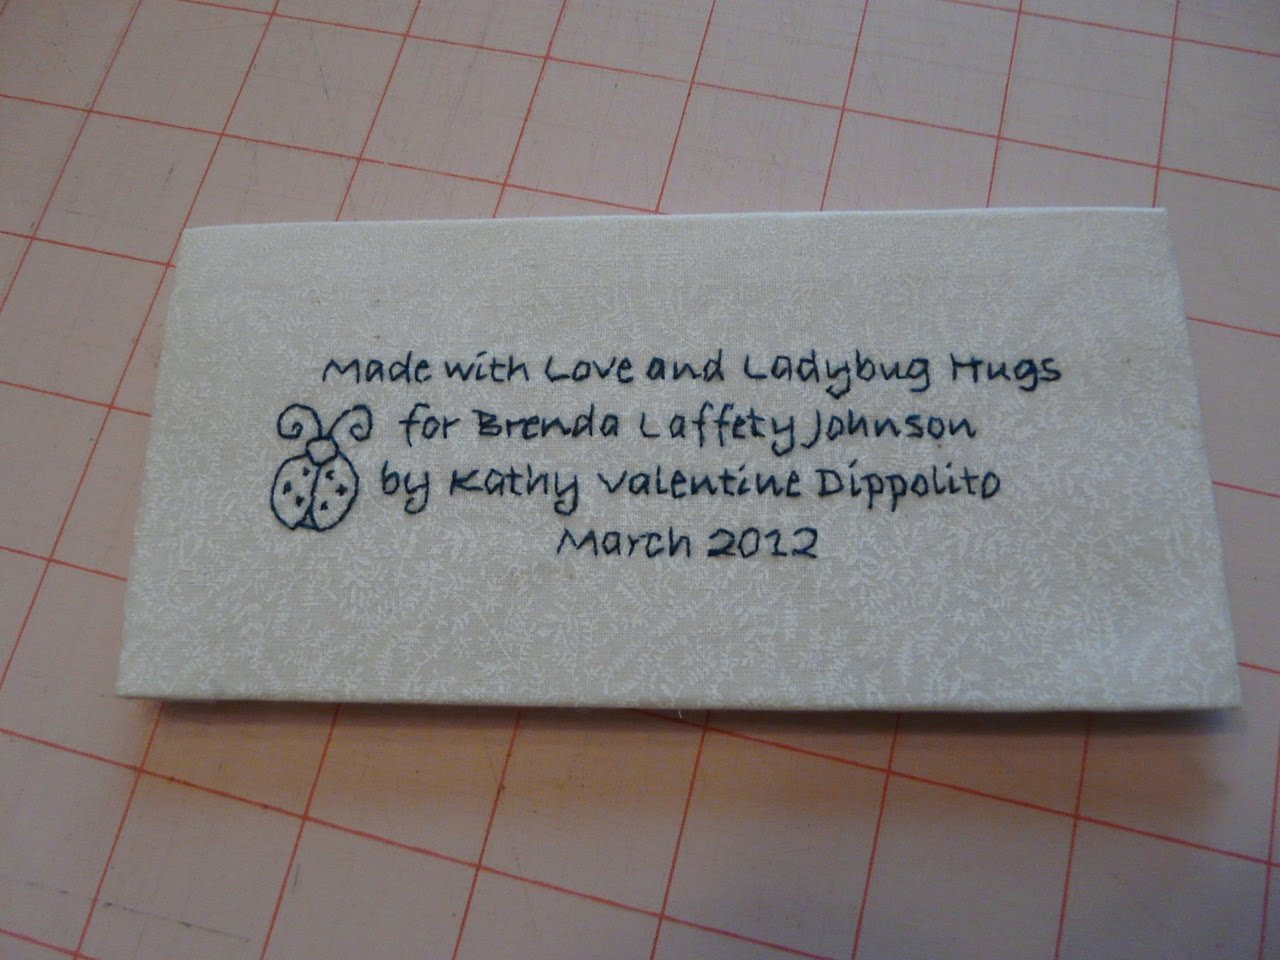 Made with Love and Ladybug Hugs: Tutorial: Embroidered Quilt Tags : quilting signature tags - Adamdwight.com